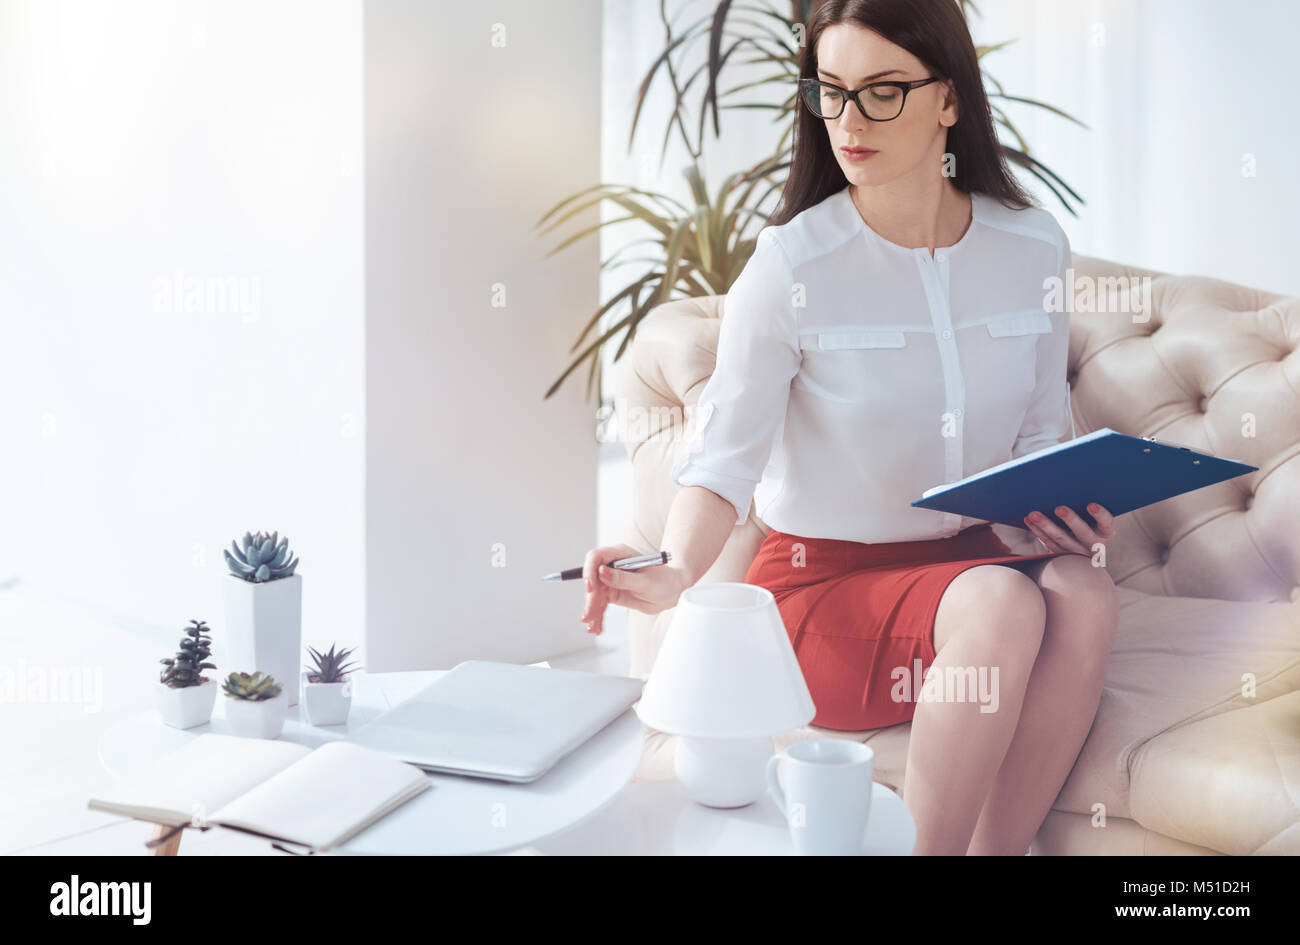 Serious businesswoman scheduling timetable for clients at office - Stock Image